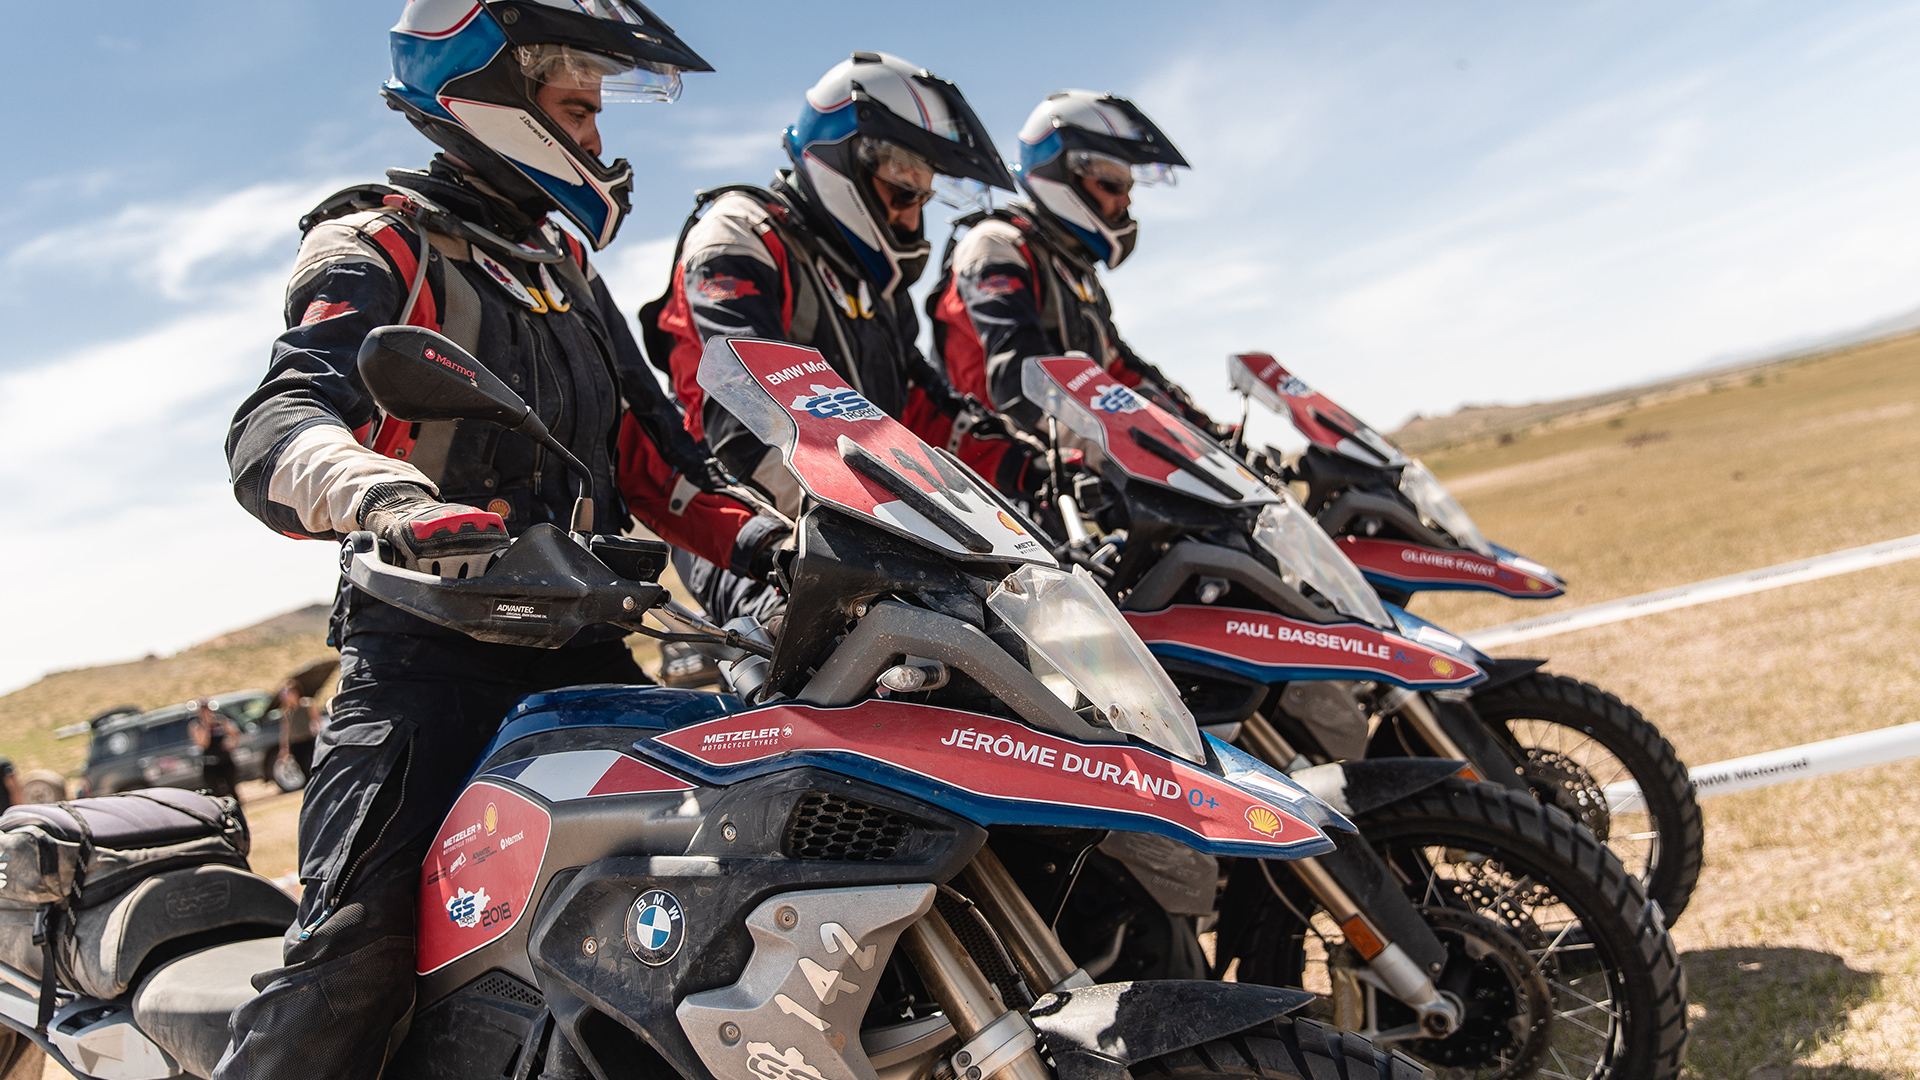 GSTrophy_Highlightmap_GalleryDay7_SlowRiding_02.jpg.asset.1530868884219